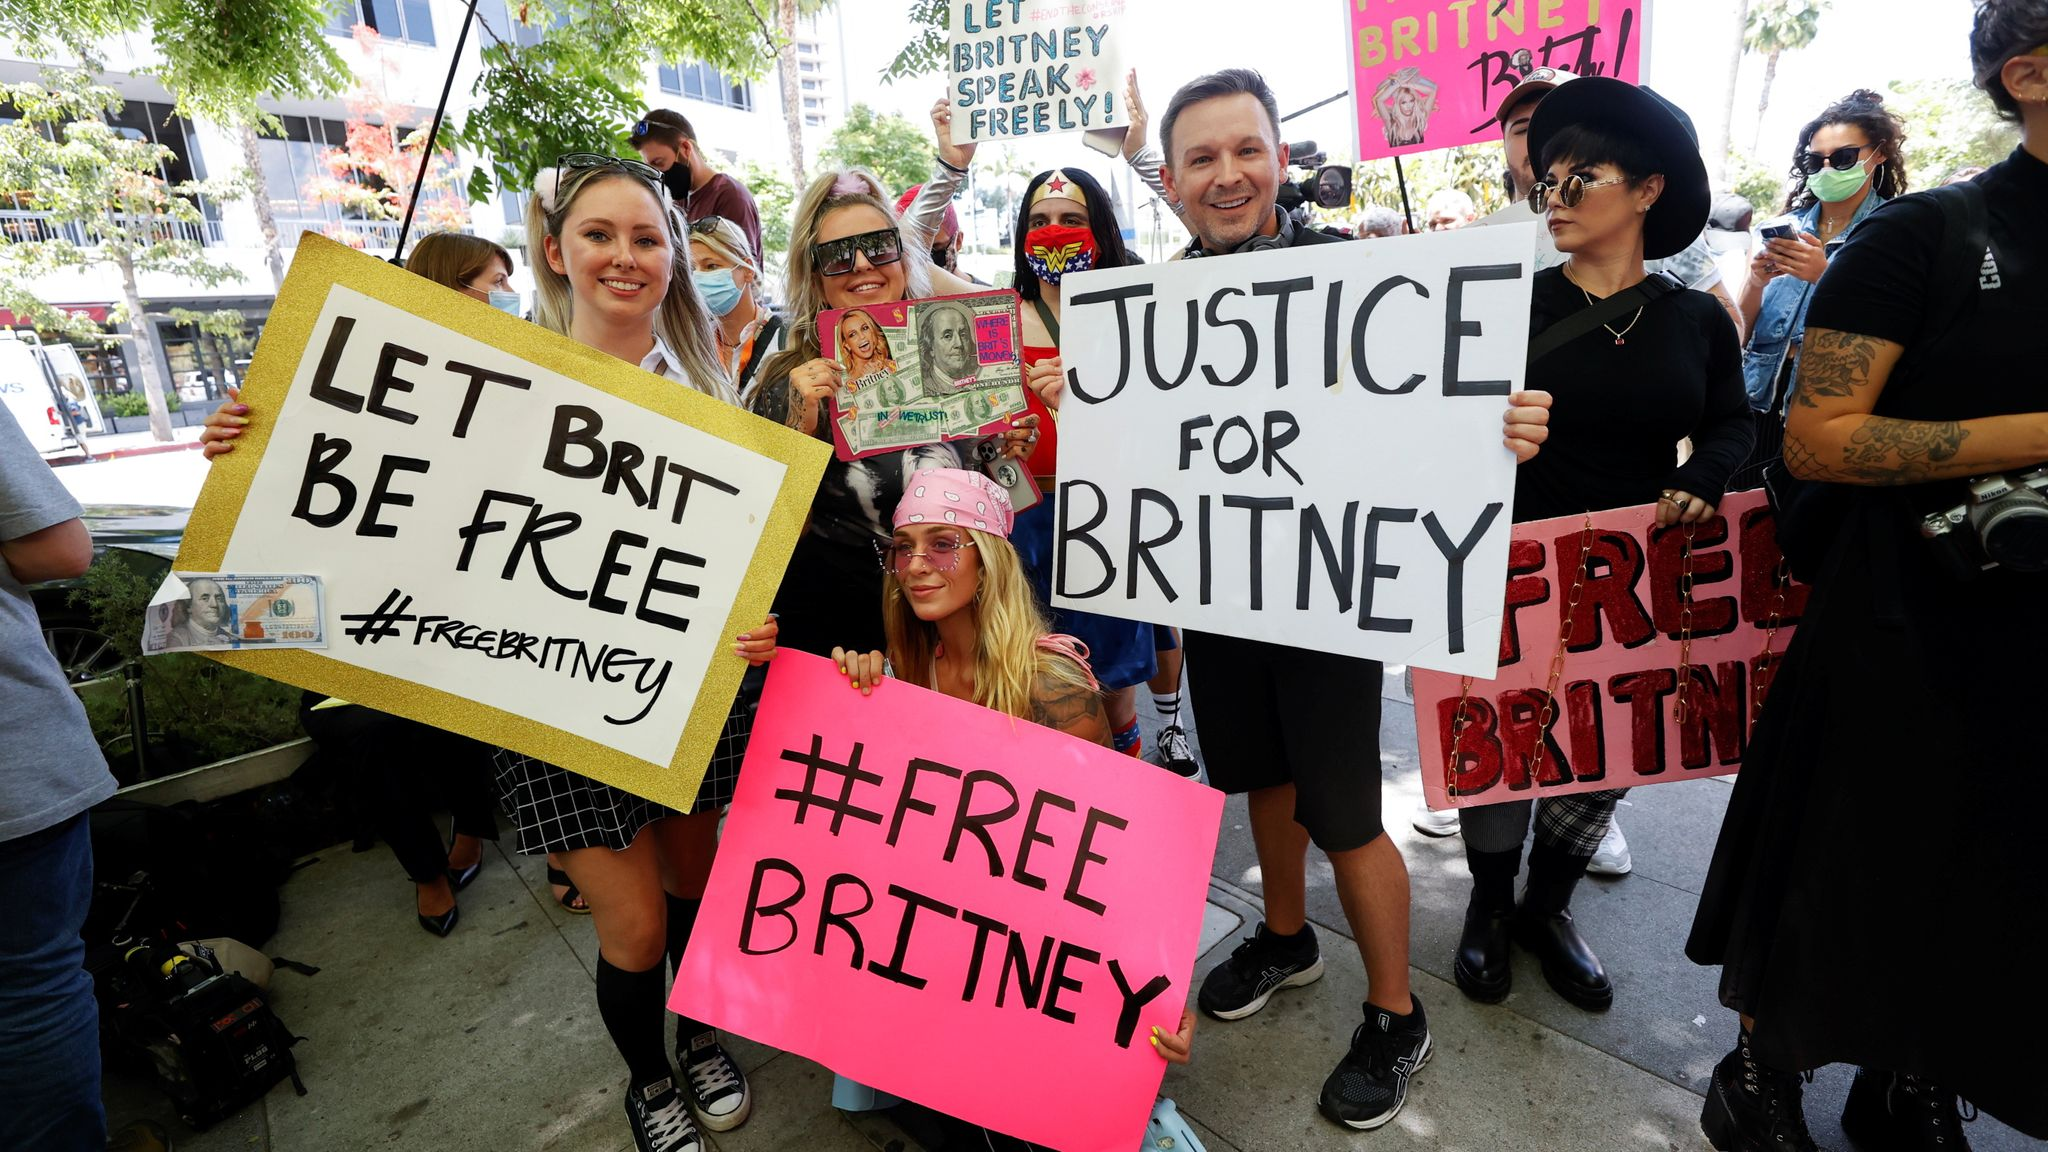 People protest in support of pop star Britney Spears on the day of a conservatorship case hearing at Stanley Mosk Courthouse in Los Angeles